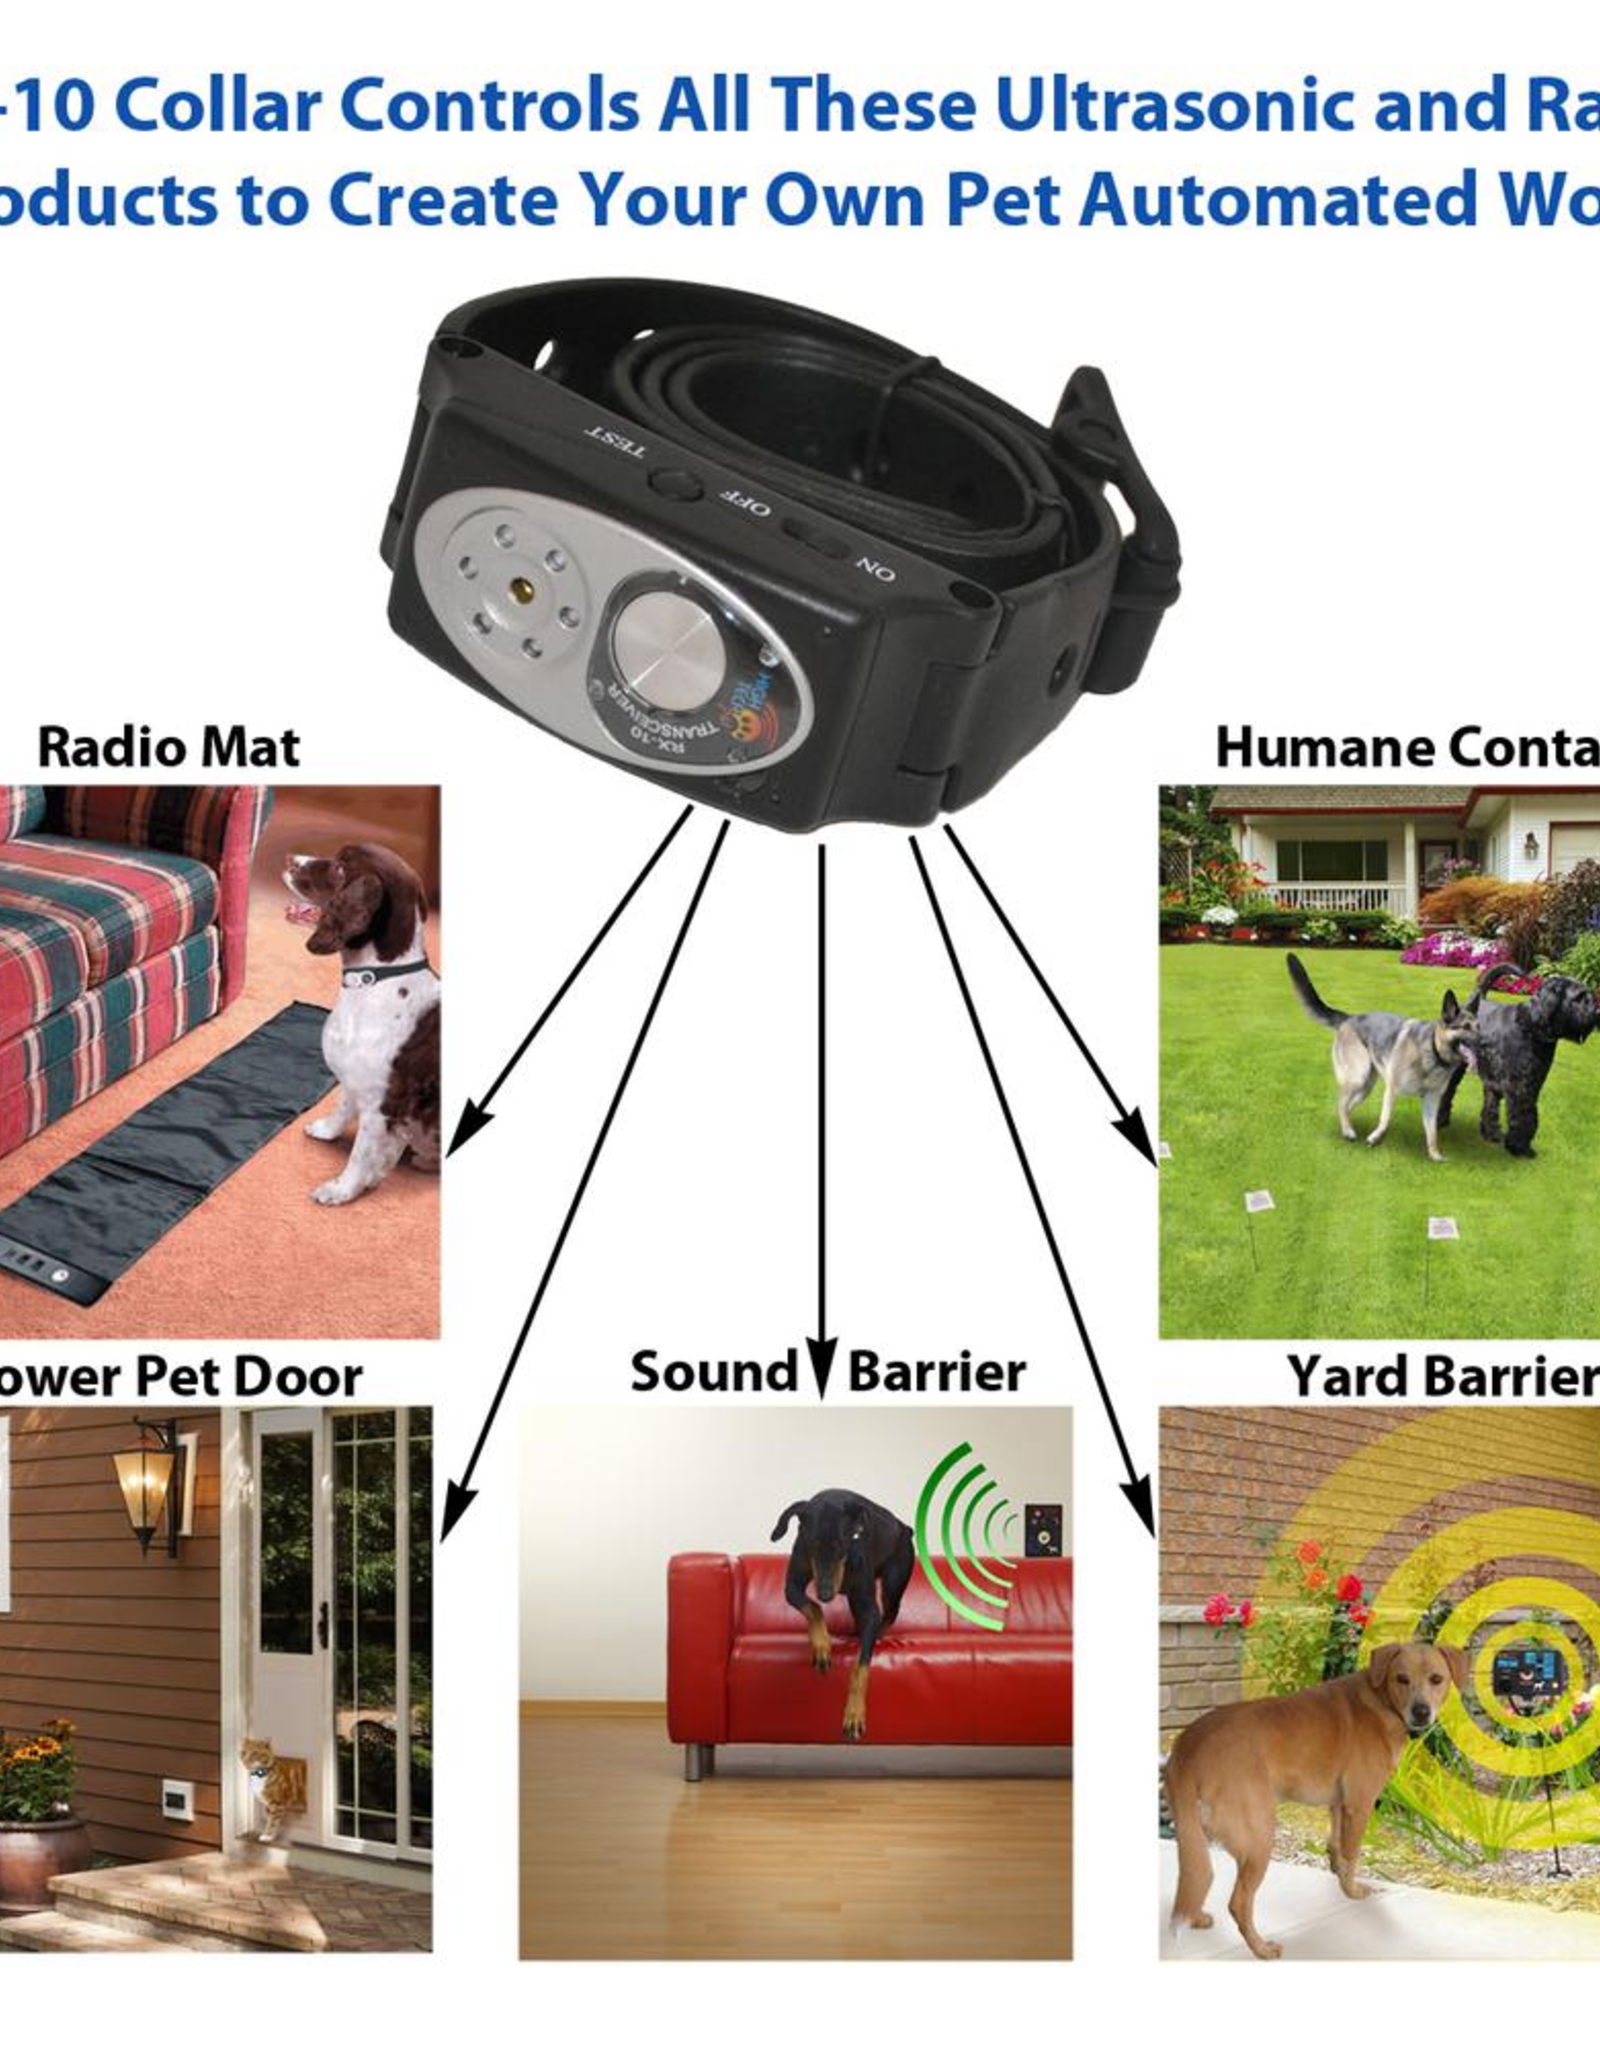 High Tech Pet Humane Contain Rechargeable Multi-Function Radio Collar